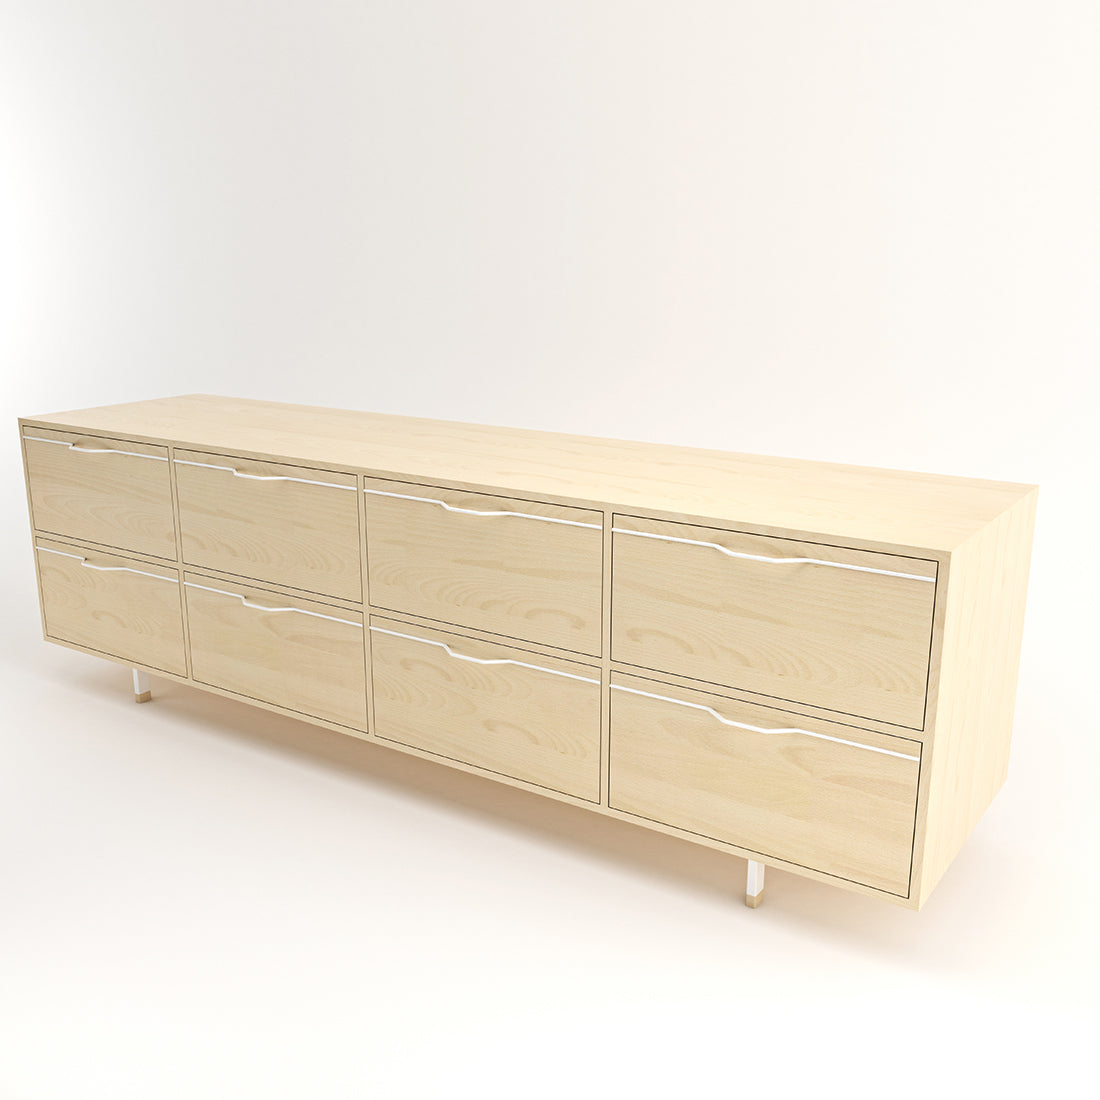 Chapman Maple Large Credenza Storage Unit w/ Drawers